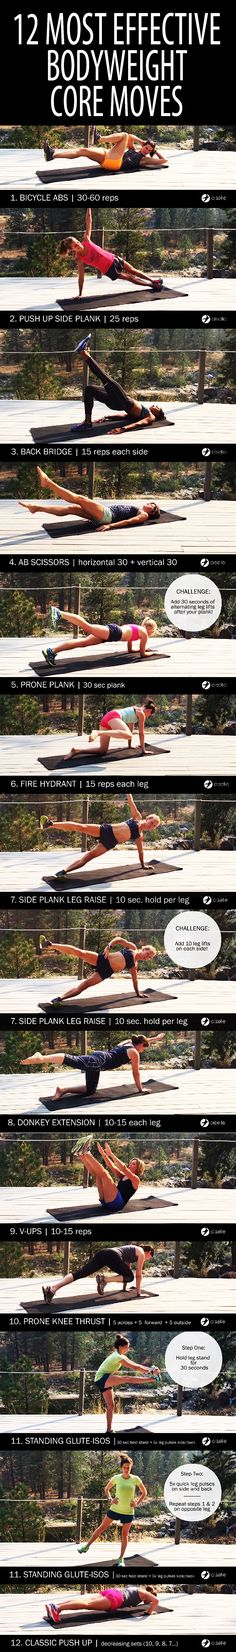 .12 most effective bodyweight core moves. #abs #sixpack #flatstomach #flatbelly #coreworkout #abworkout #abexercise #sixpackworkout #bellyfat #muffintop #lovehandles